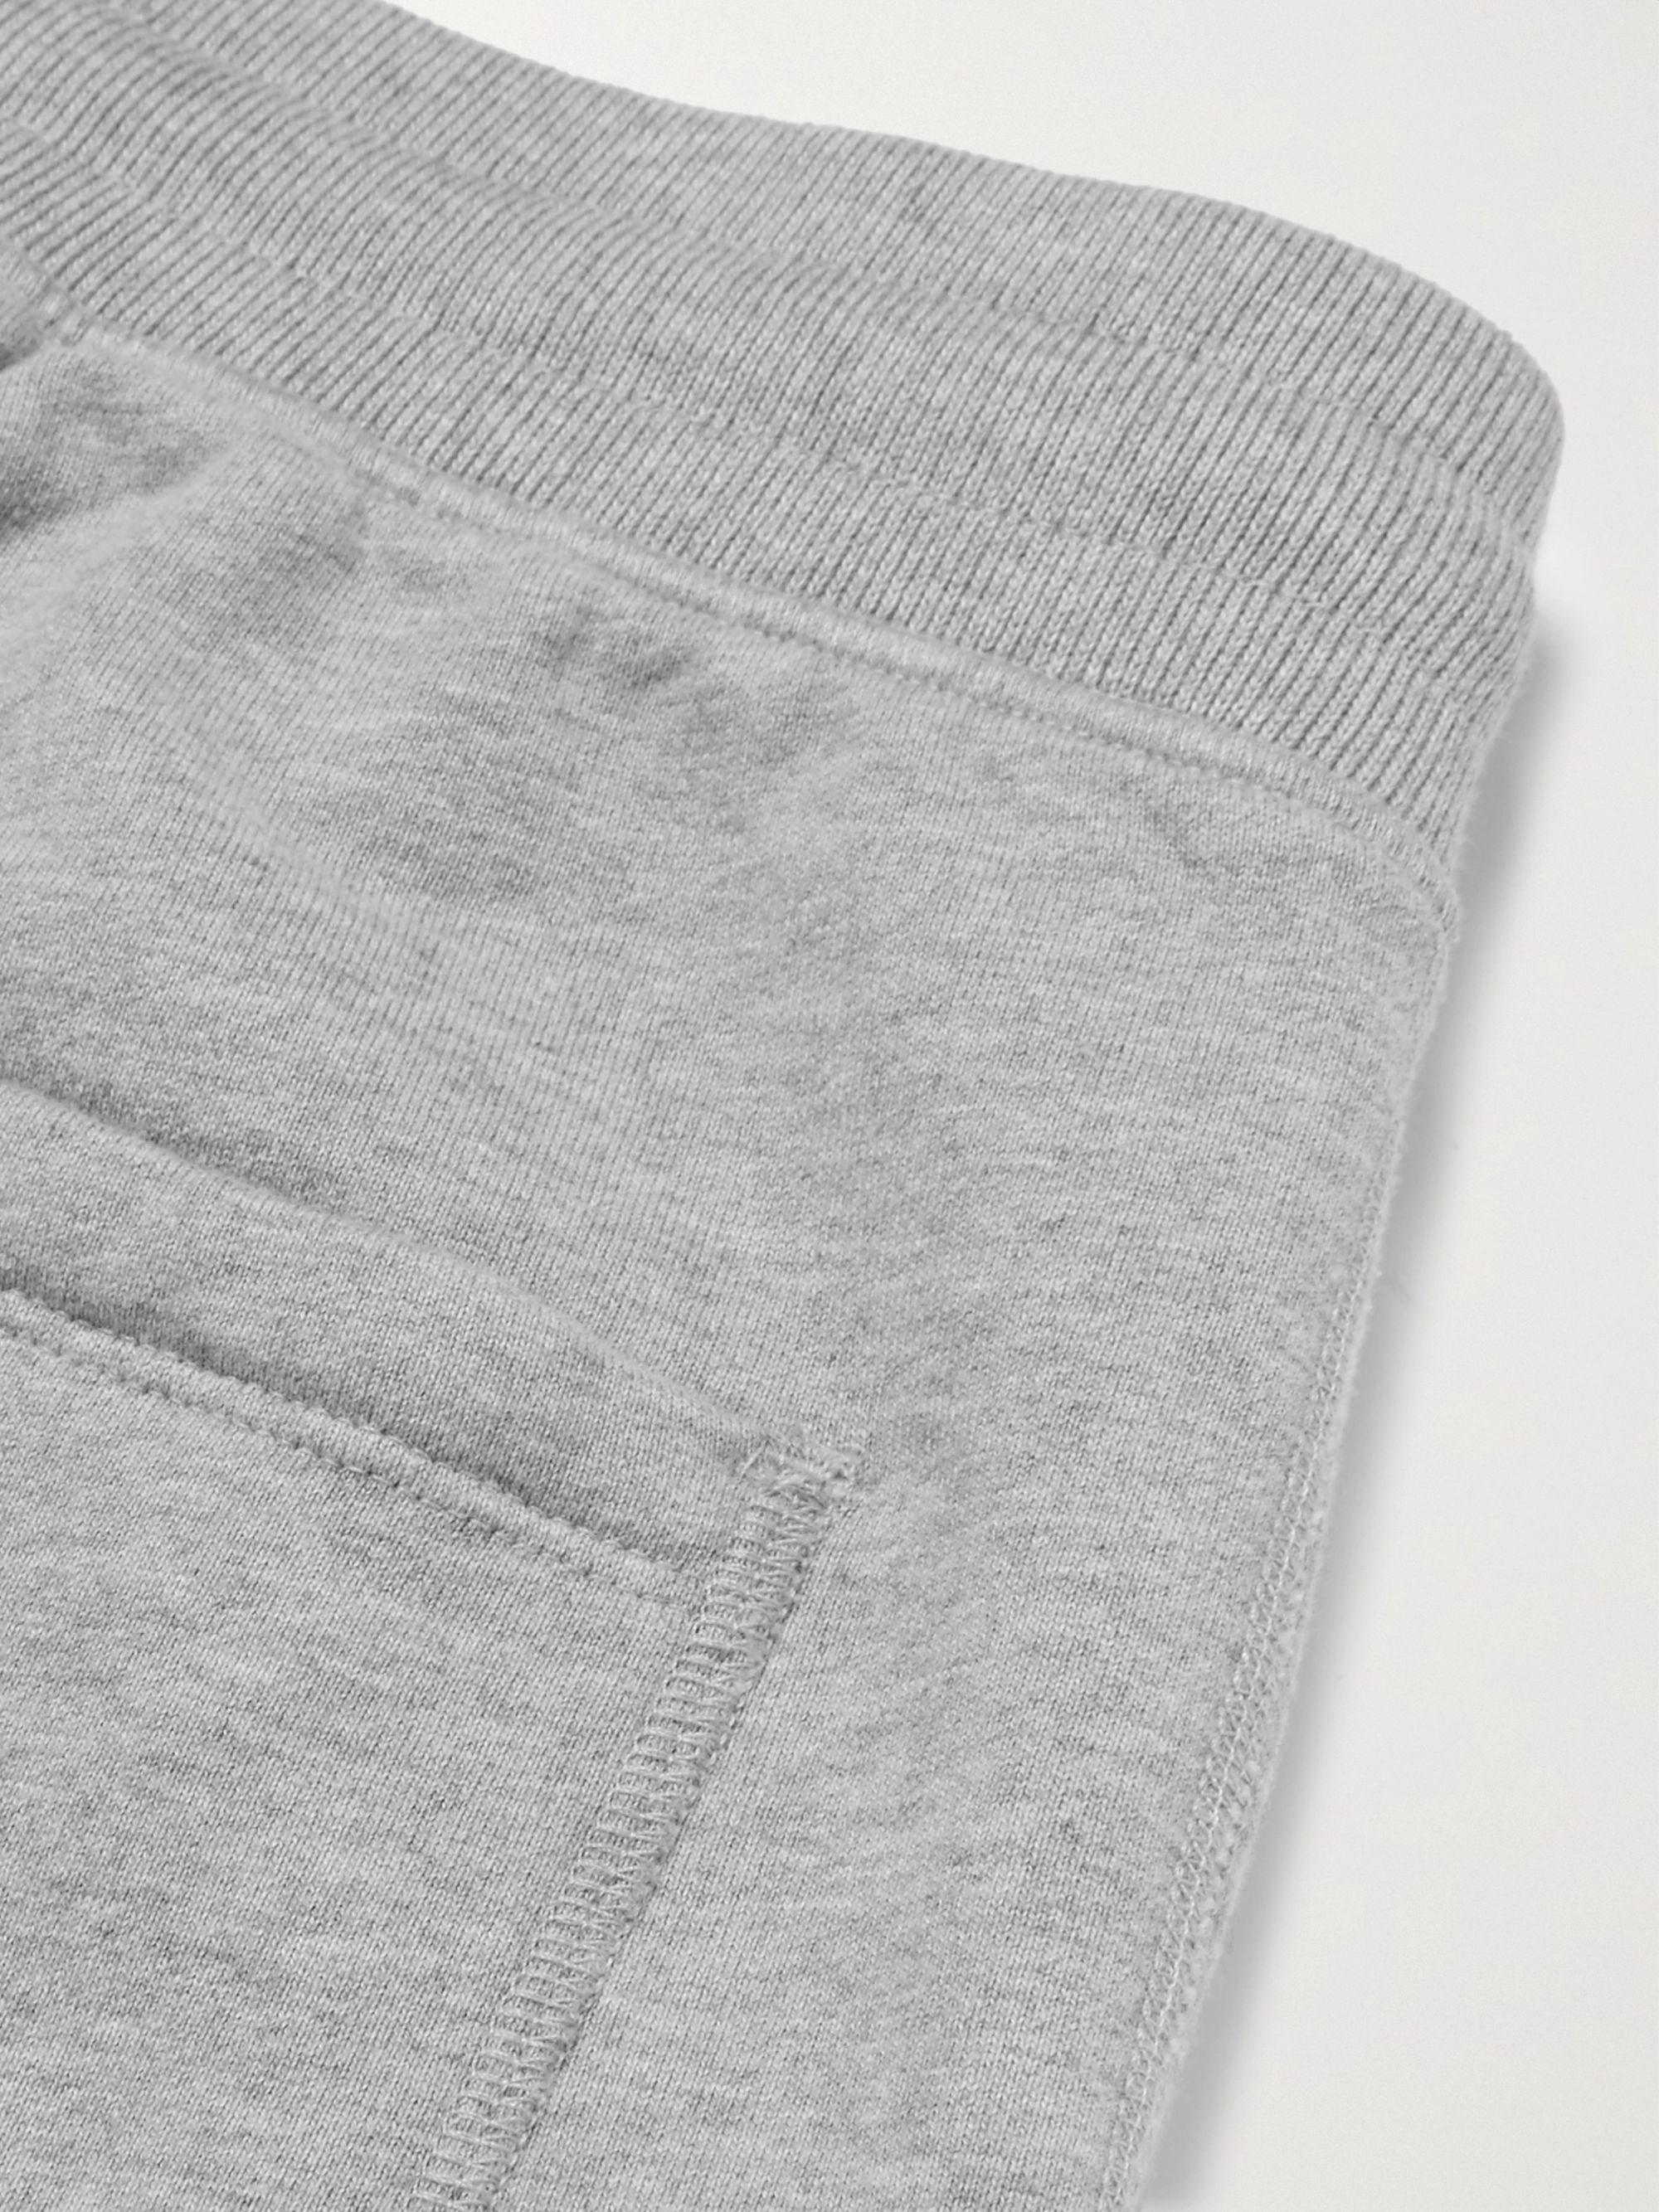 Reigning Champ Slim-Fit Cotton-Jersey Sweatpants